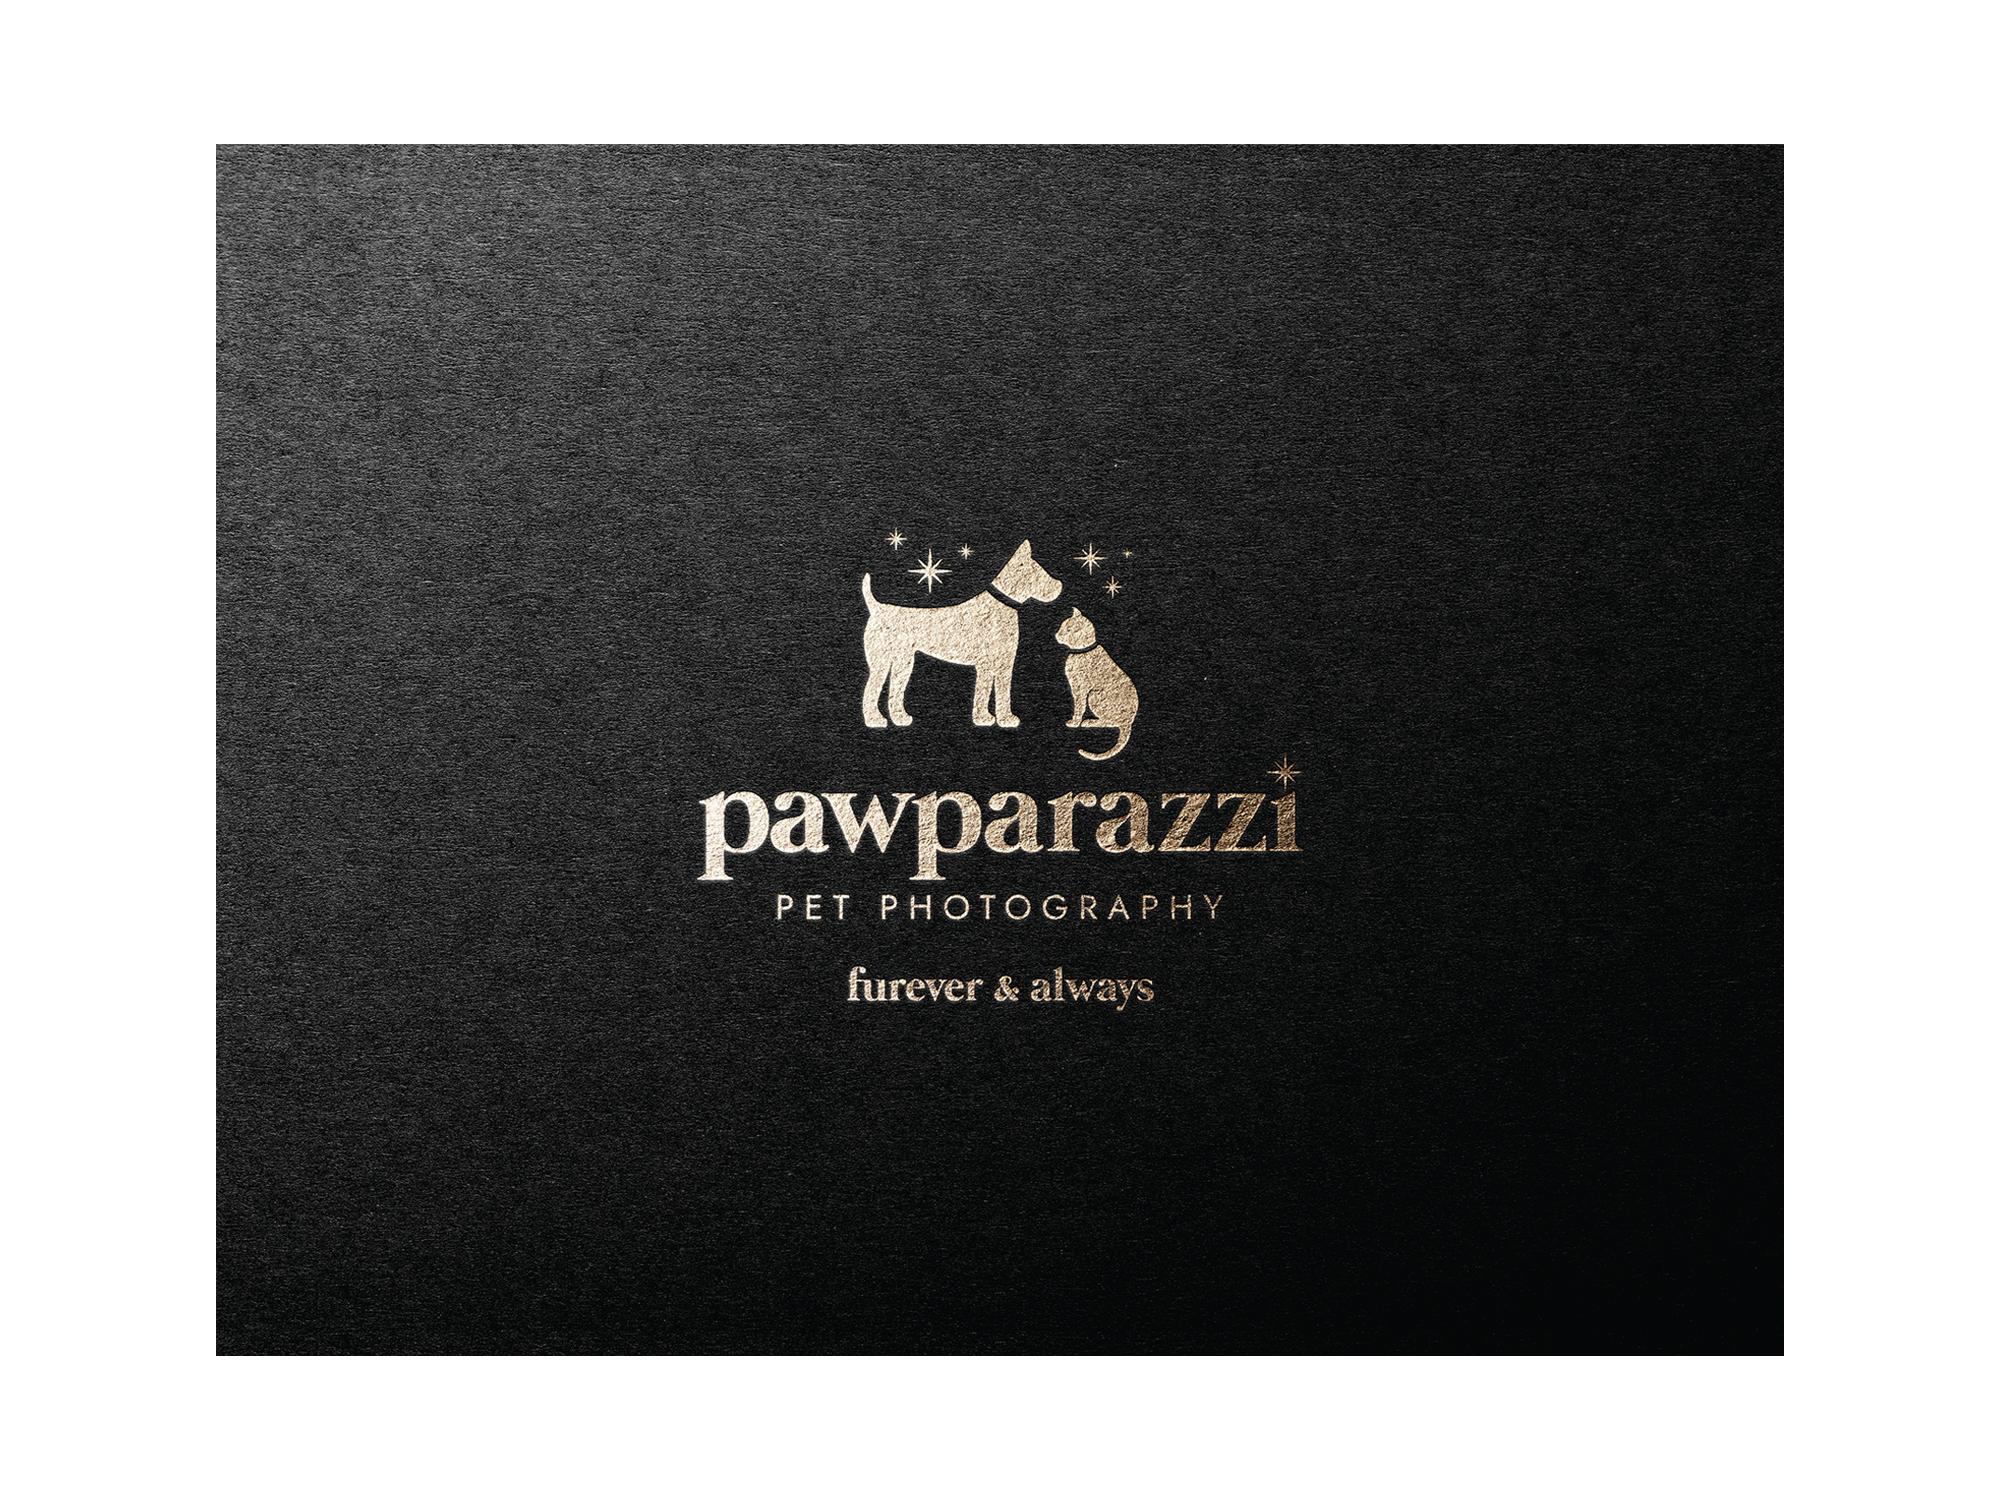 Pawparazzi Winnipeg Feminist Brands Website Design Feminist Entrepreneurs Brand Presentation